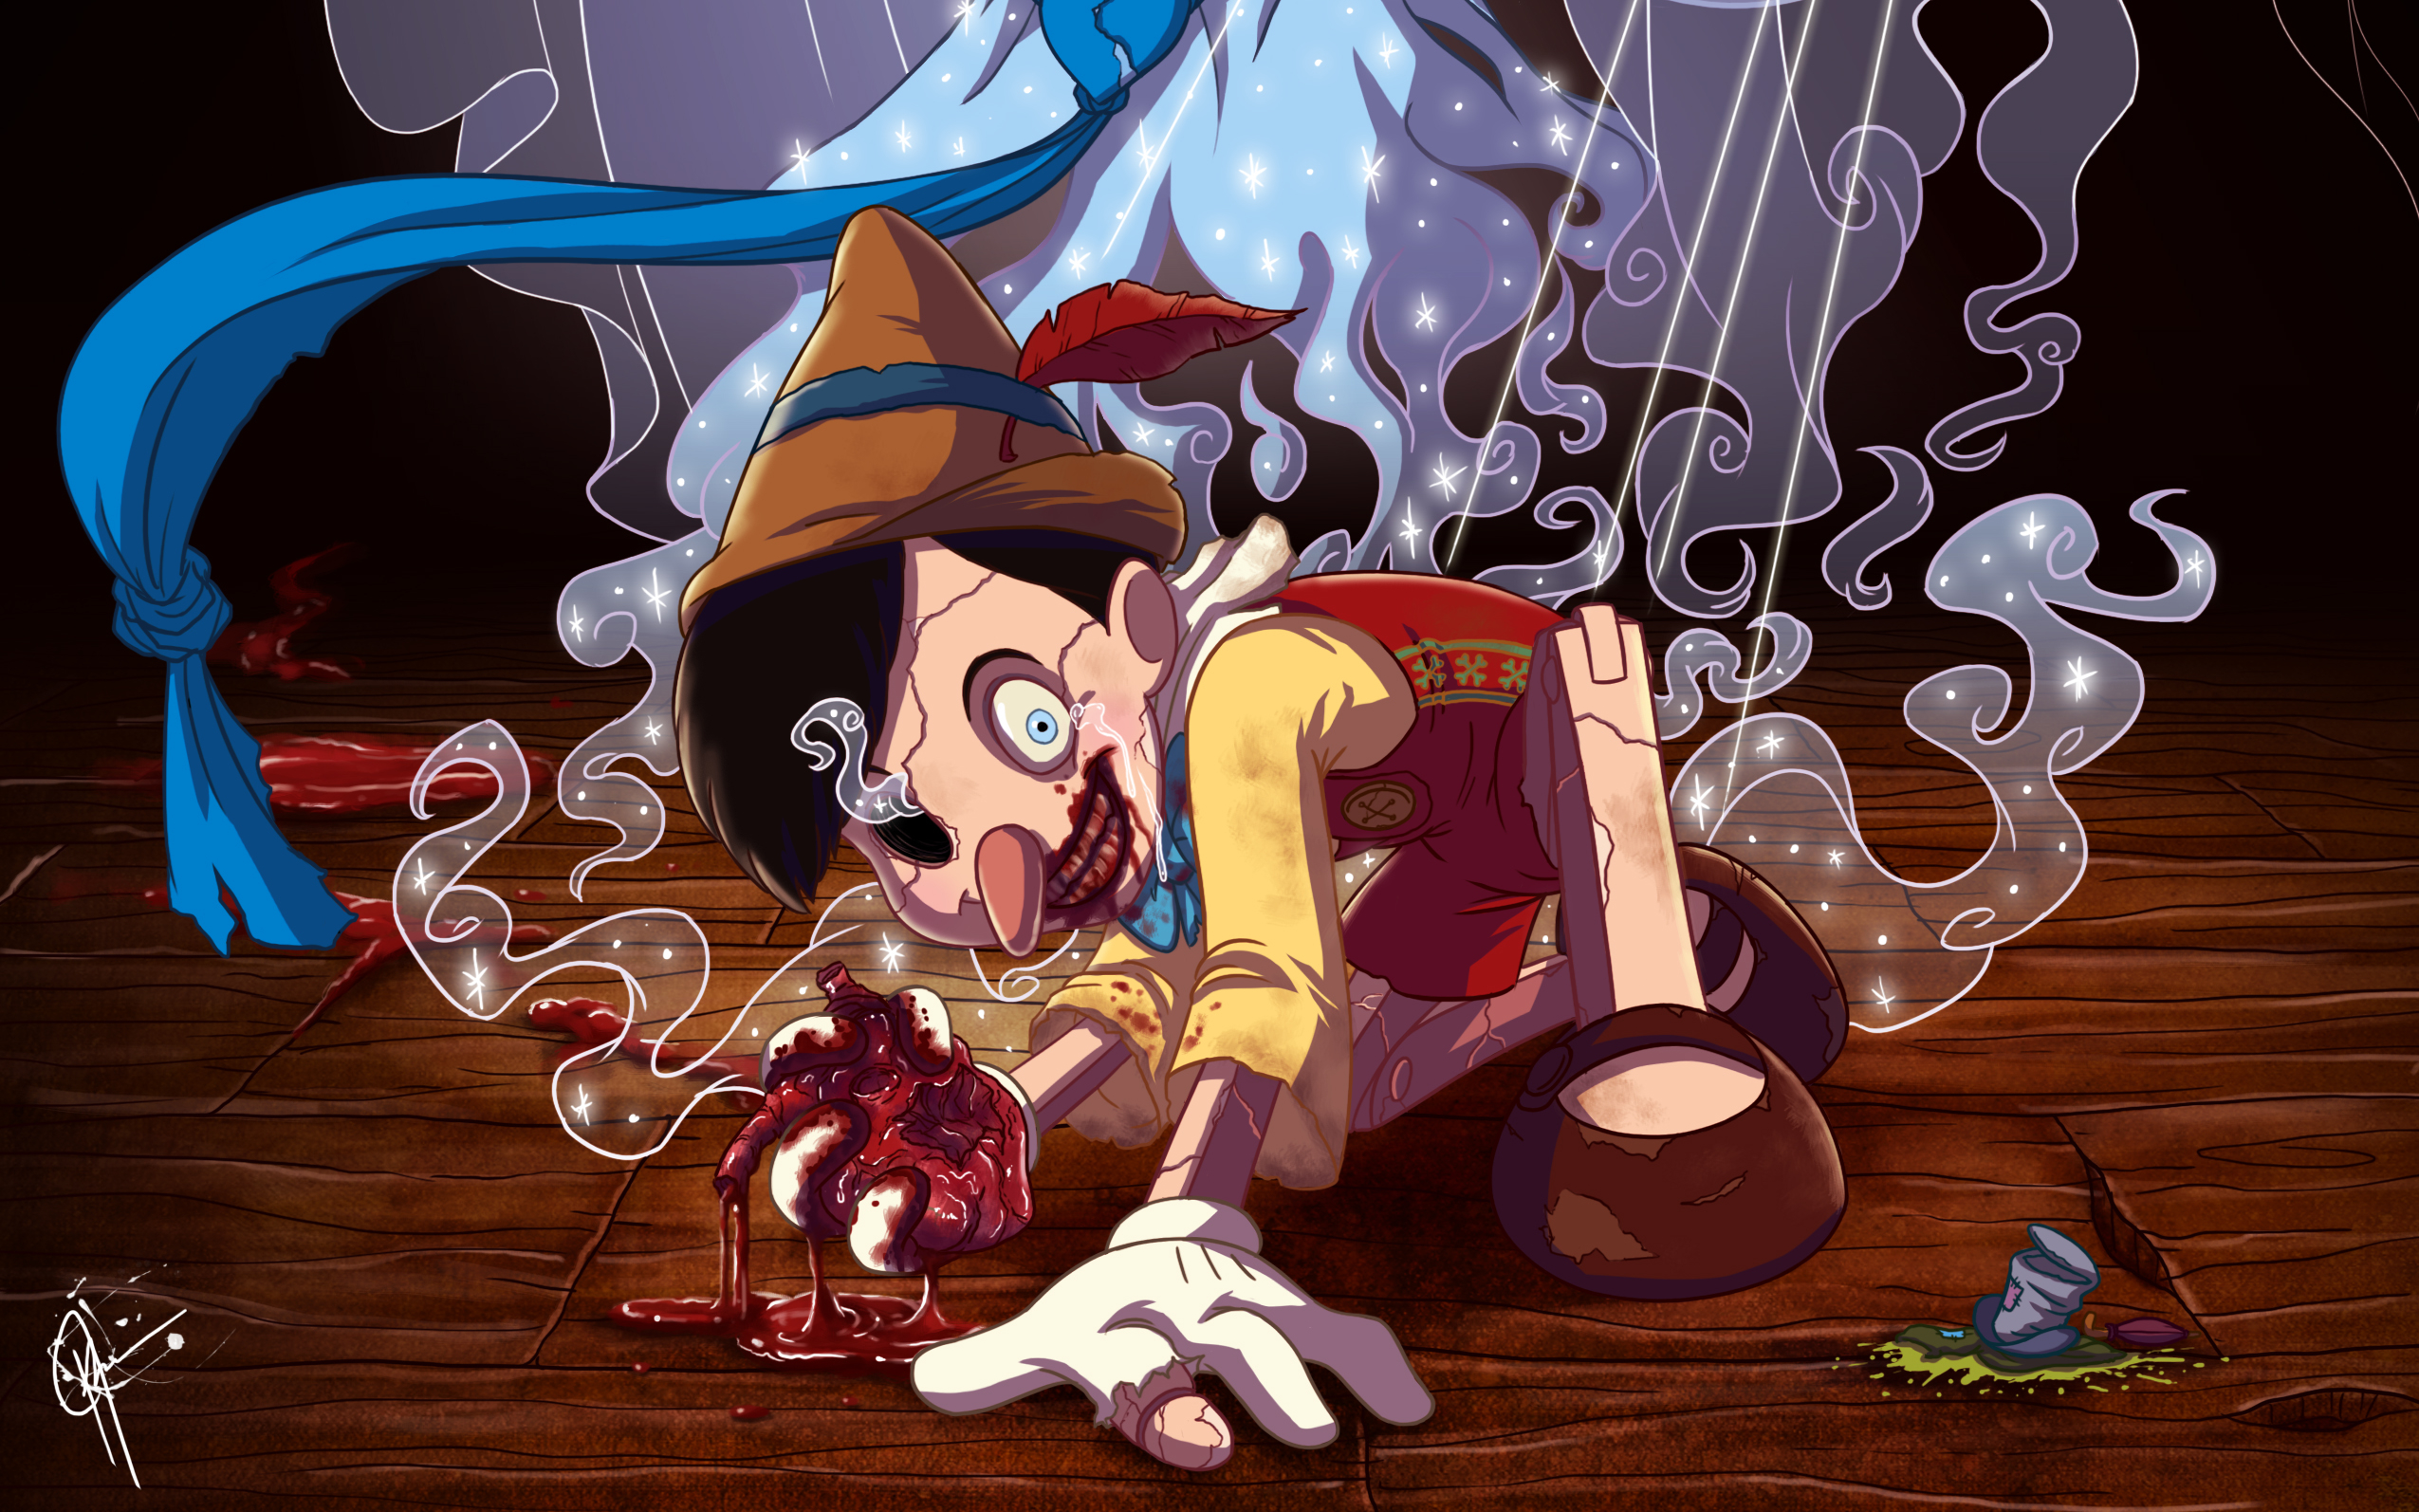 Princess Anime Wallpaper 7 Pinocchio Hd Wallpapers Background Images Wallpaper